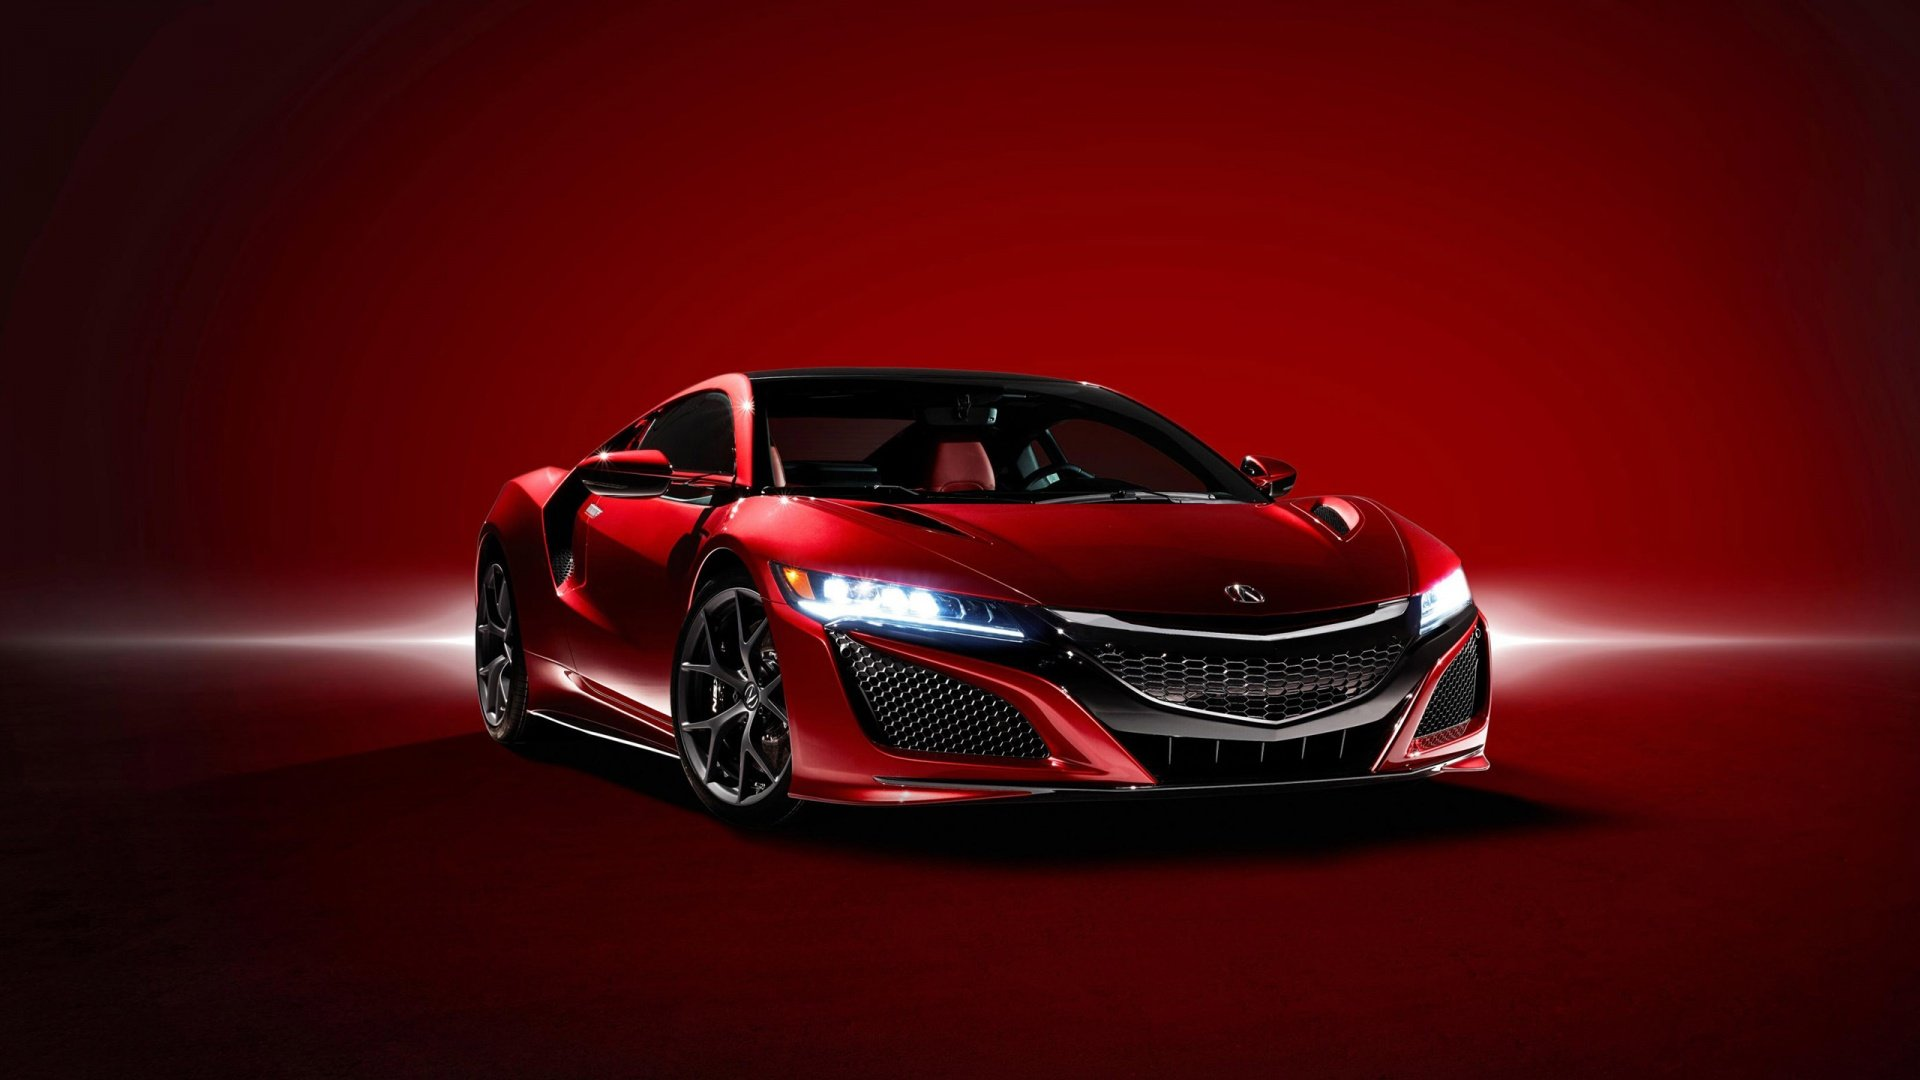 Supercars HD Wallpapers 1080p 1920x1080